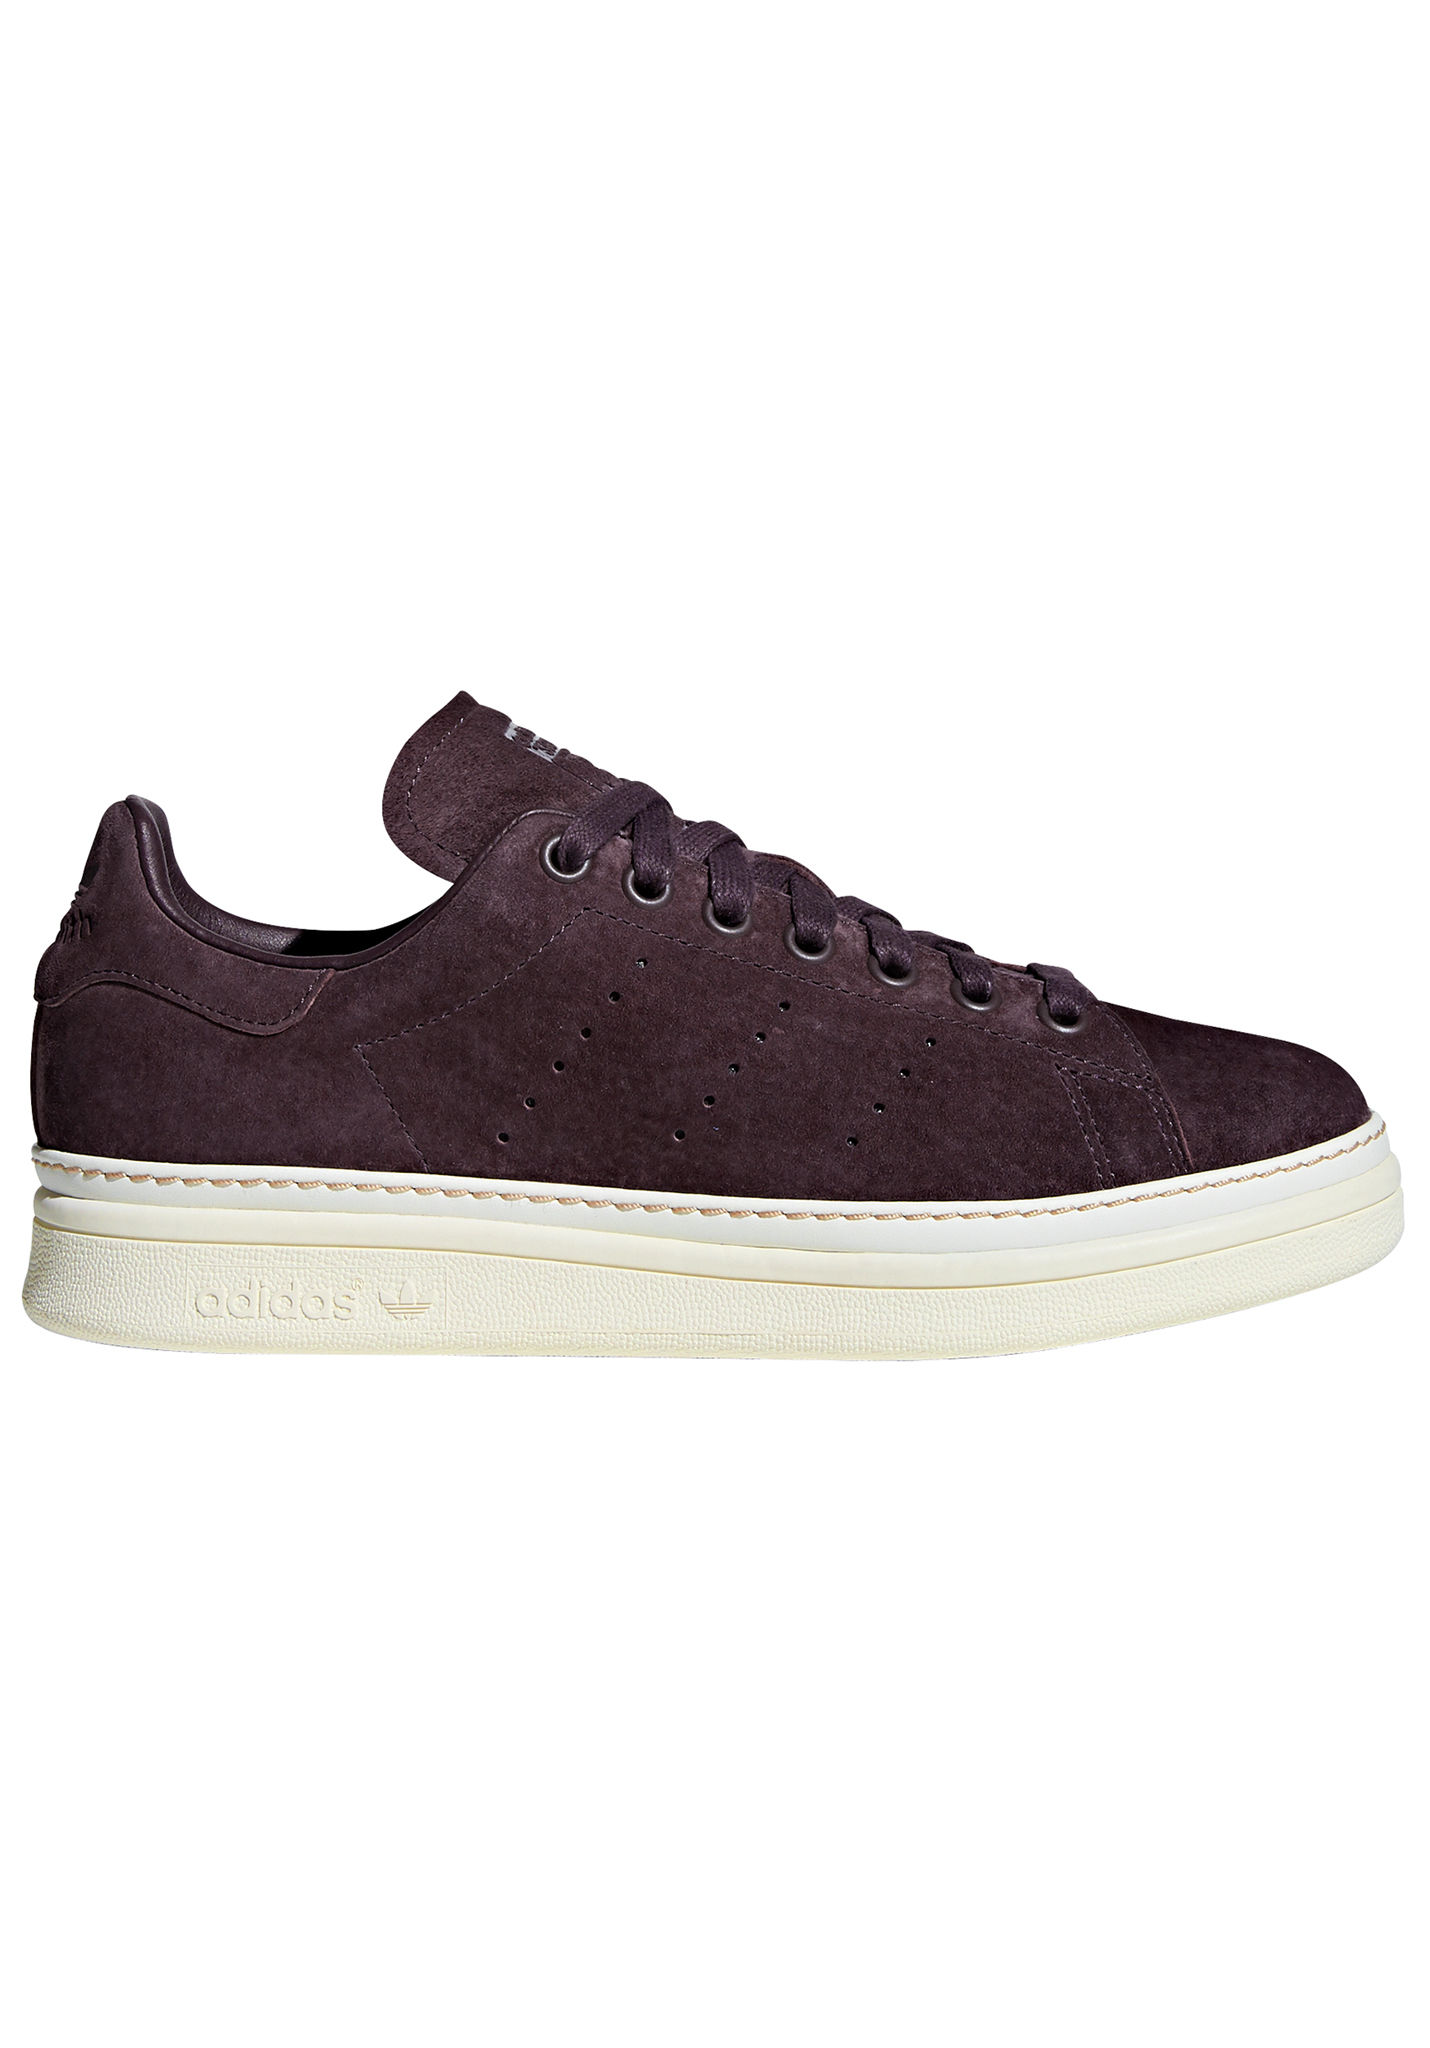 25680a912bbefb ADIDAS ORIGINALS Stan Smith New Bold - Sneakers for Women - Red - Planet  Sports